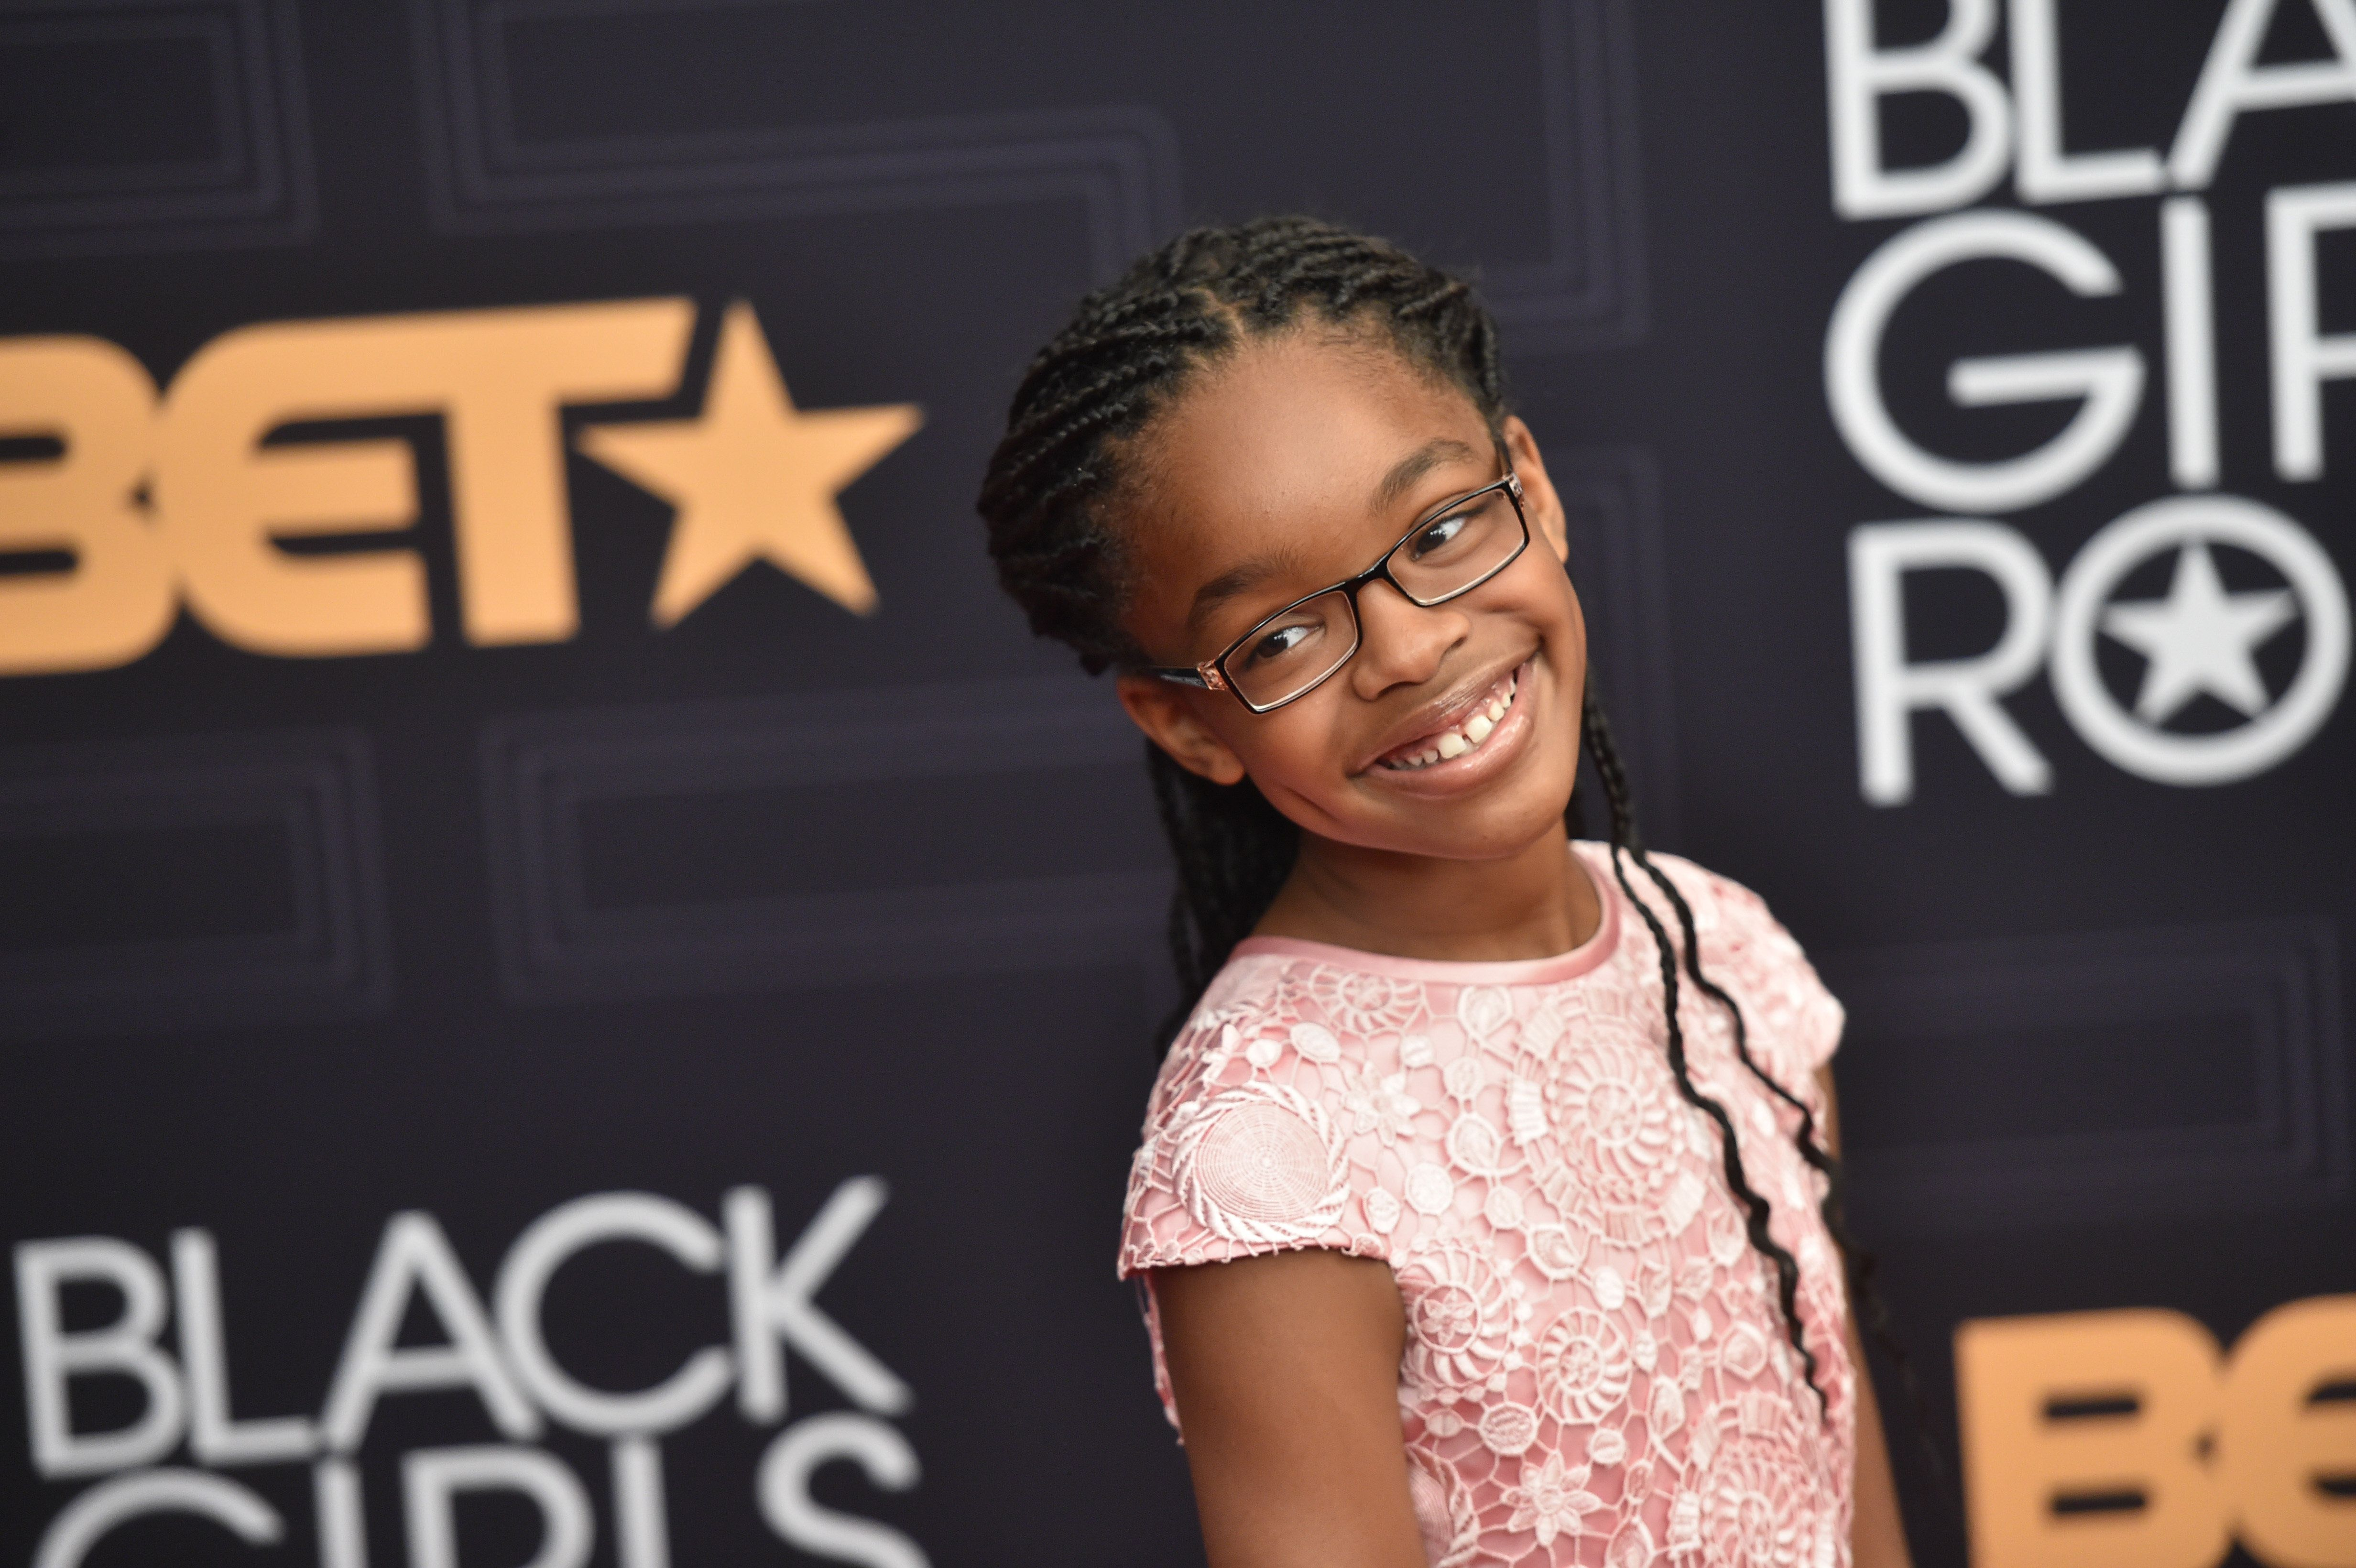 NEWARK, NEW JERSEY - APRIL 01: Marsai Martin attends Black Girls Rock! 2016 at New Jersey Performing Arts Center on April 1, 2016 in Newark, New Jersey. (Photo by Paras Griffin/Getty Images)